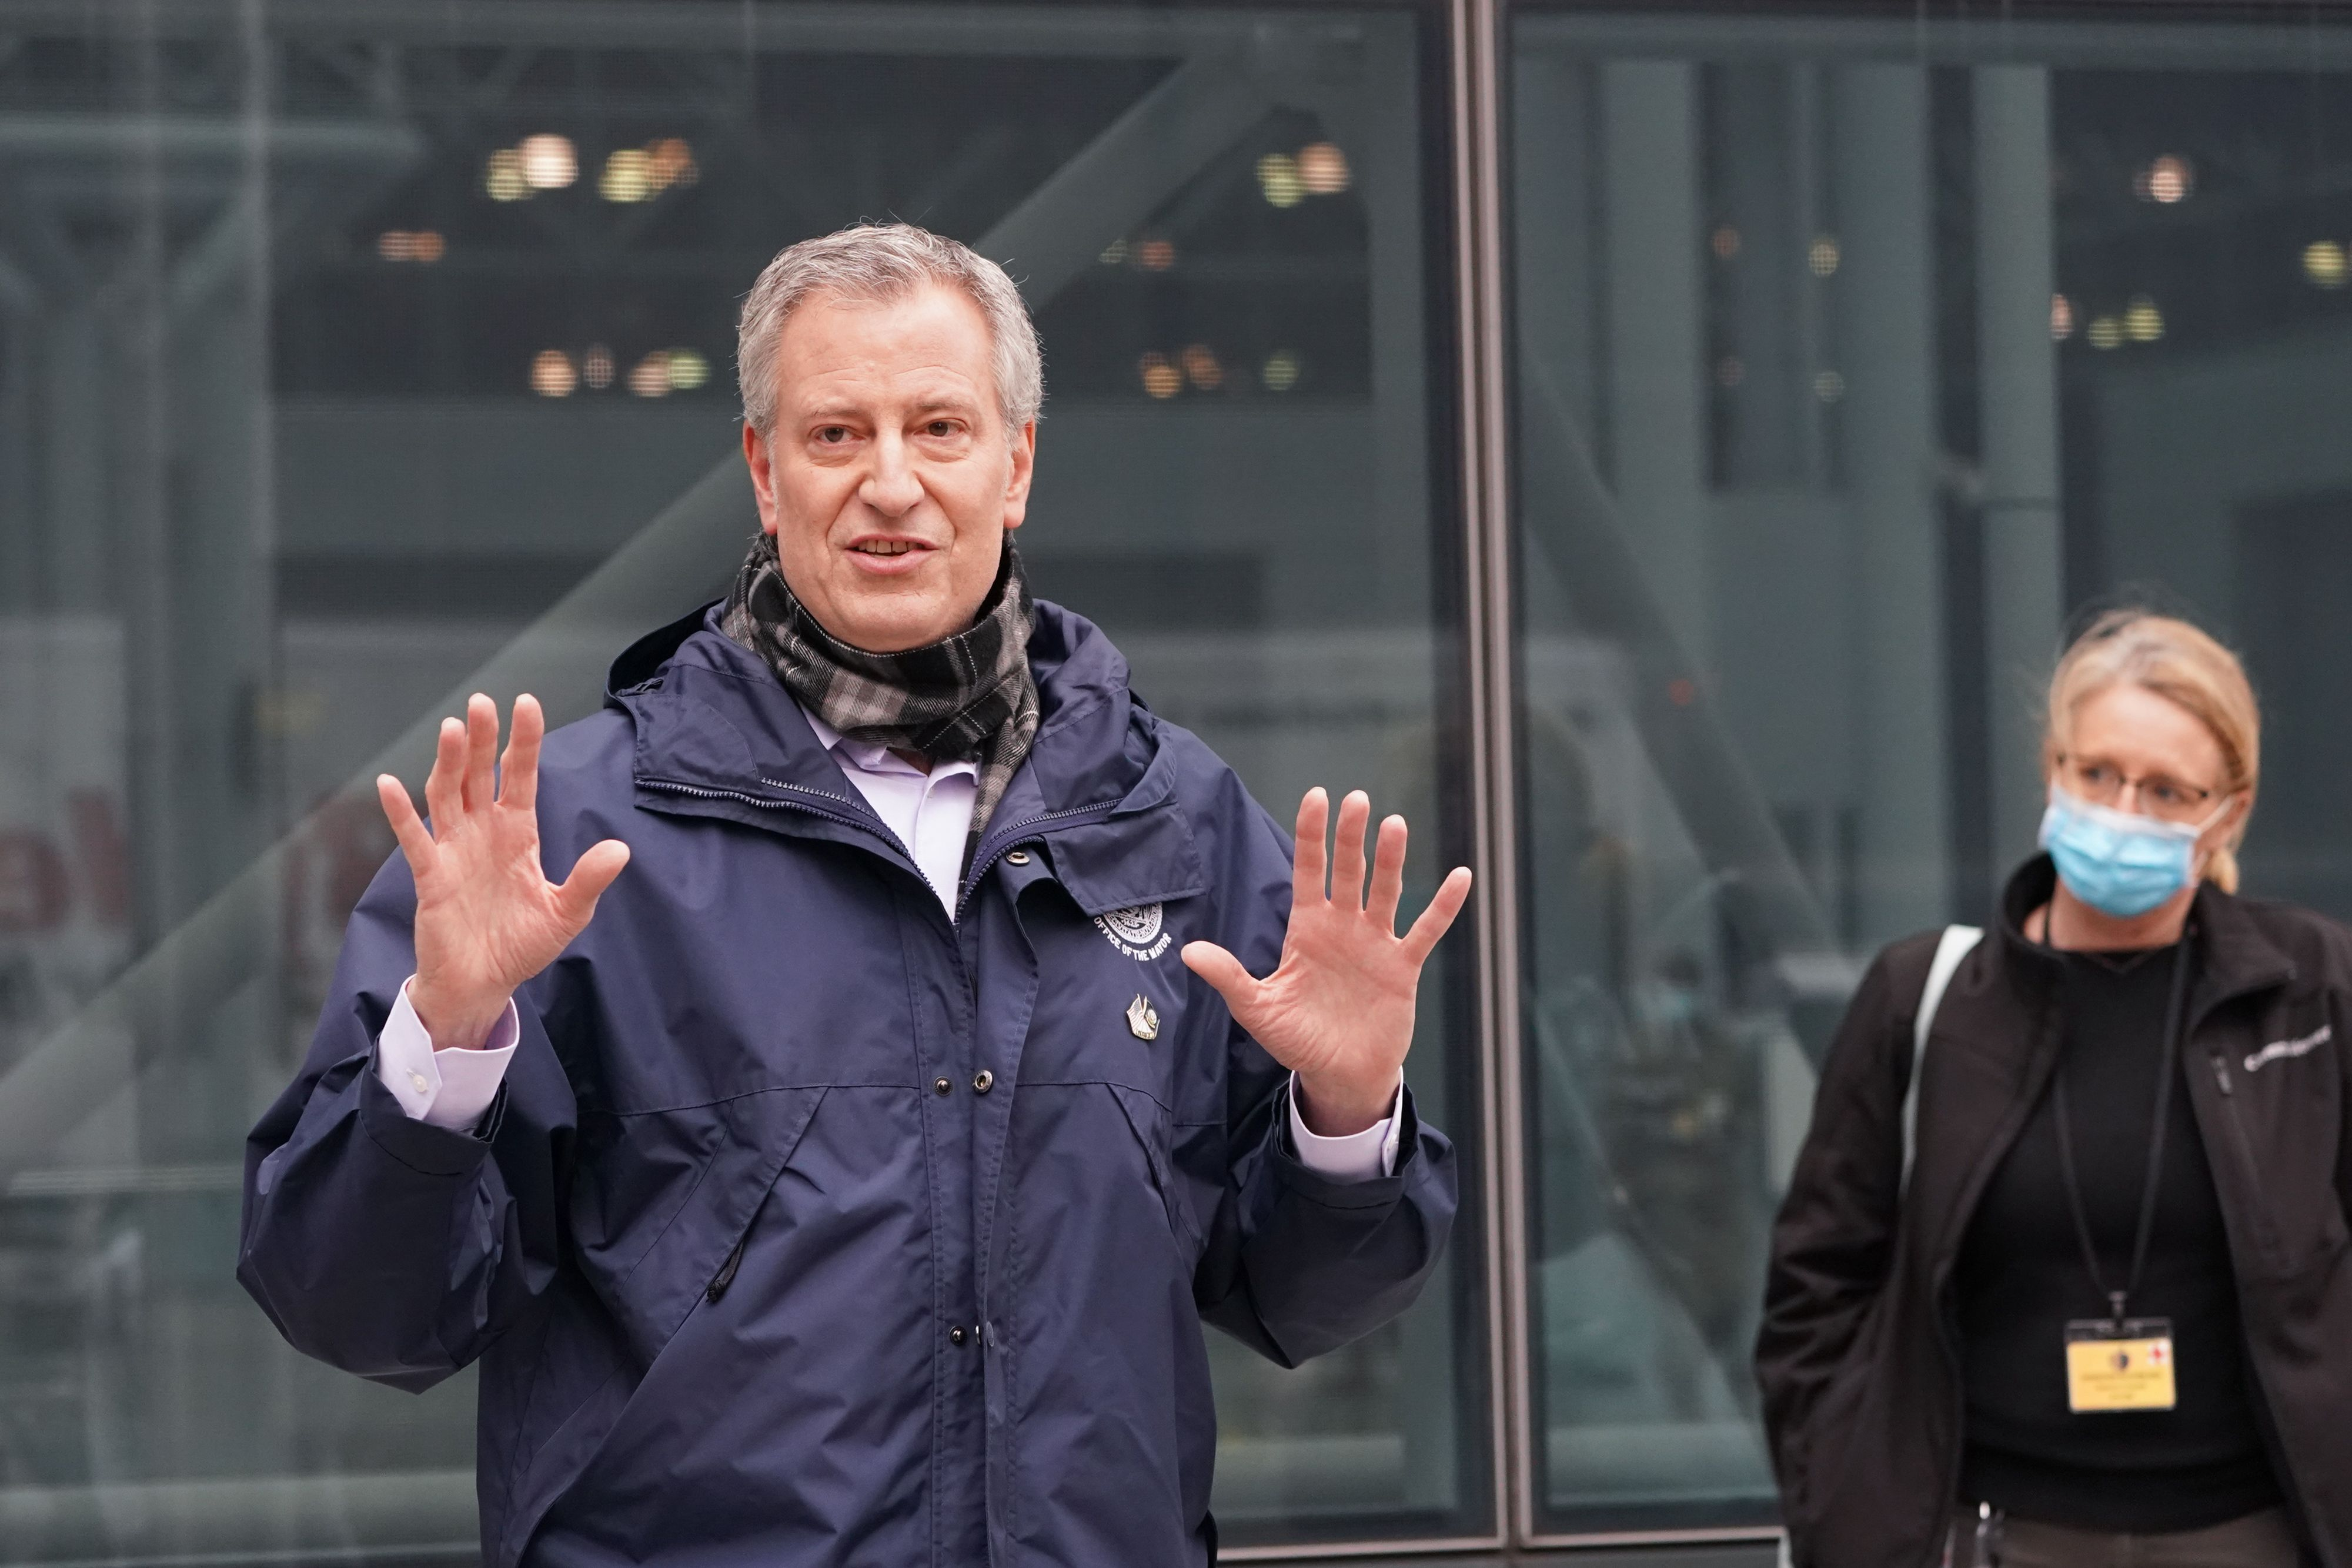 NYC Mayor Bill de Blasio on April 5. BRYAN R. SMITH/AFP via Getty Images)